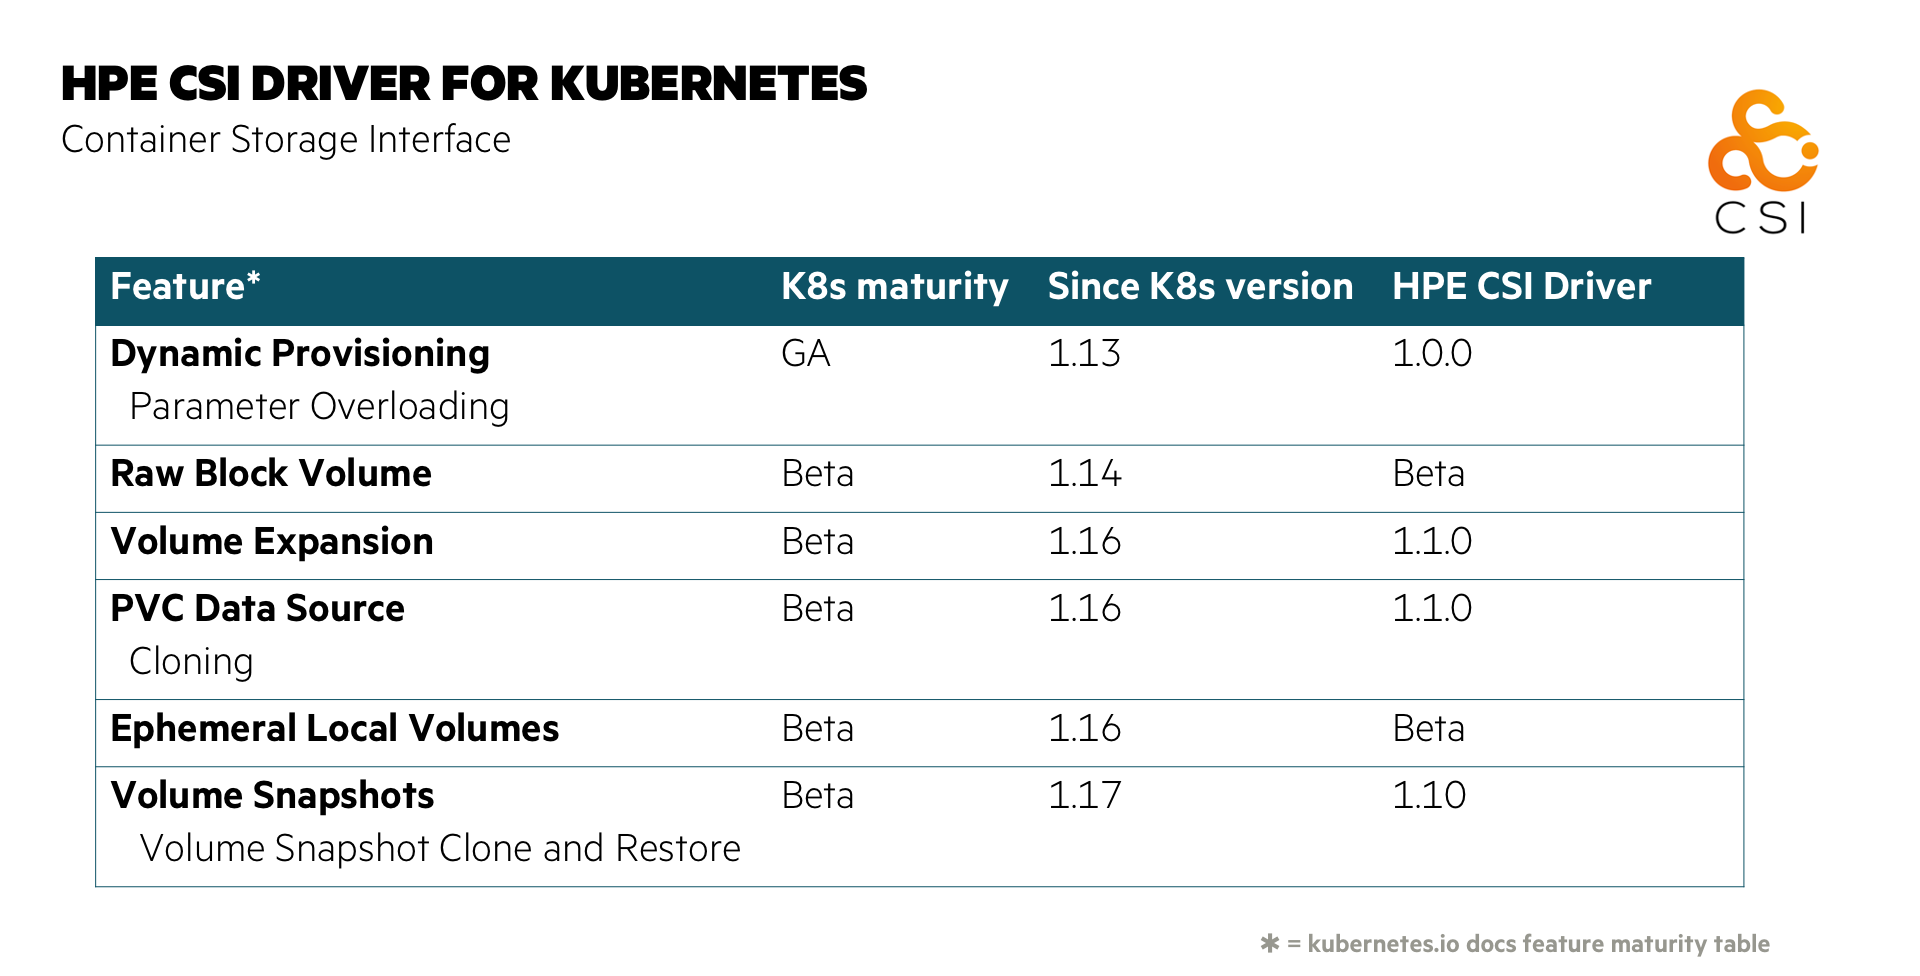 HPE CSI Driver for Kubernetes feature maturity table